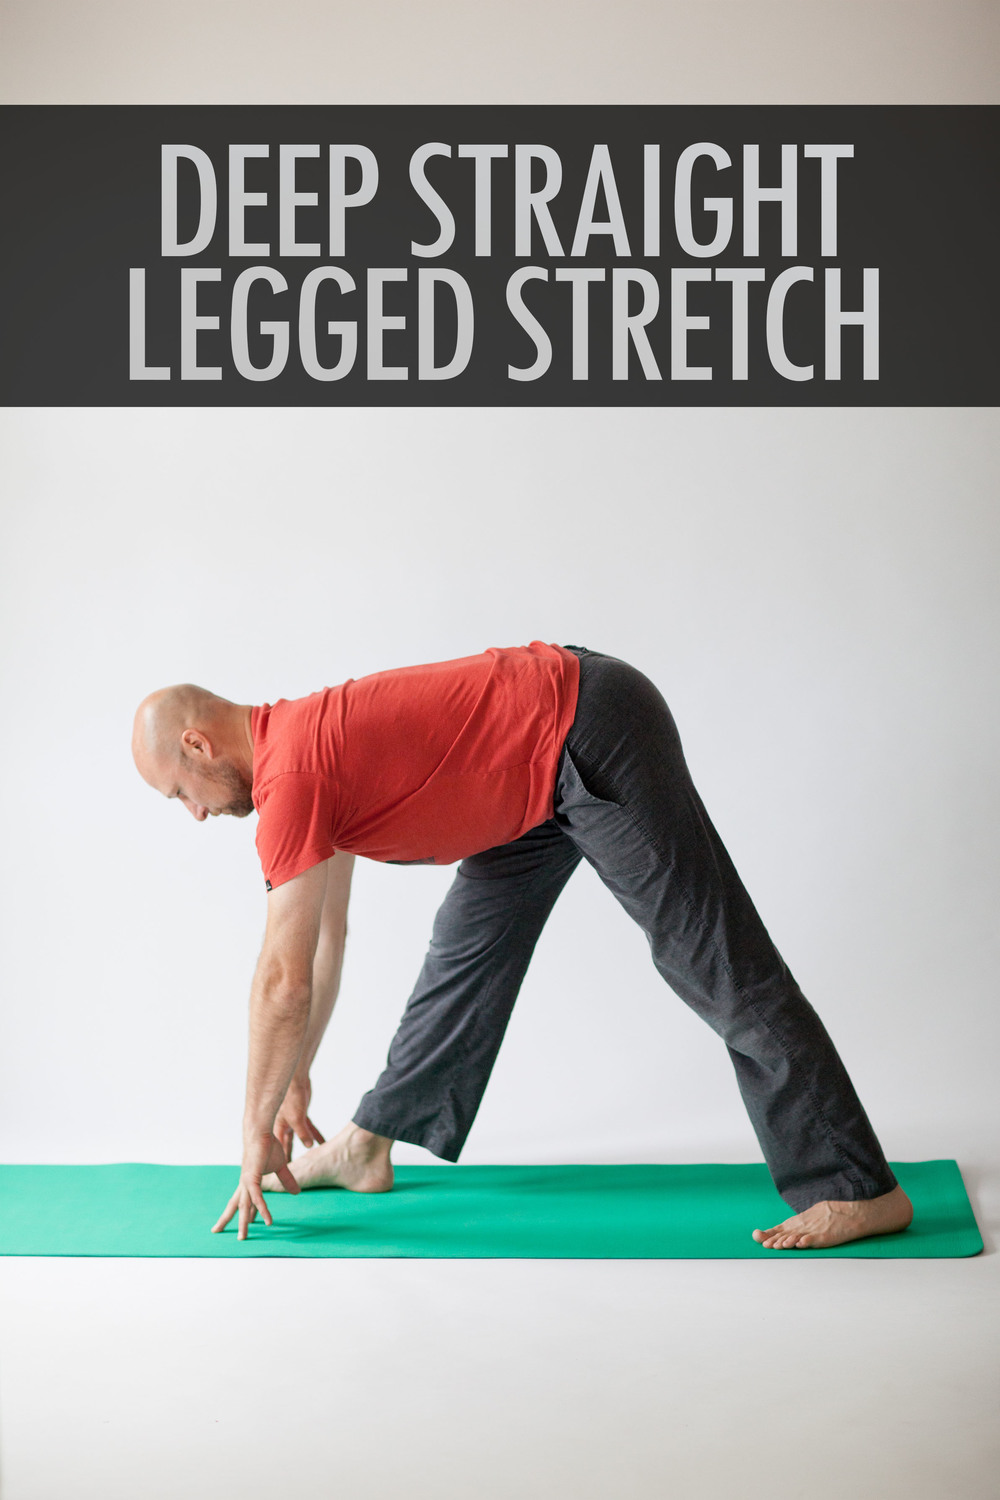 Deep Straight Legged Stretch.jpg